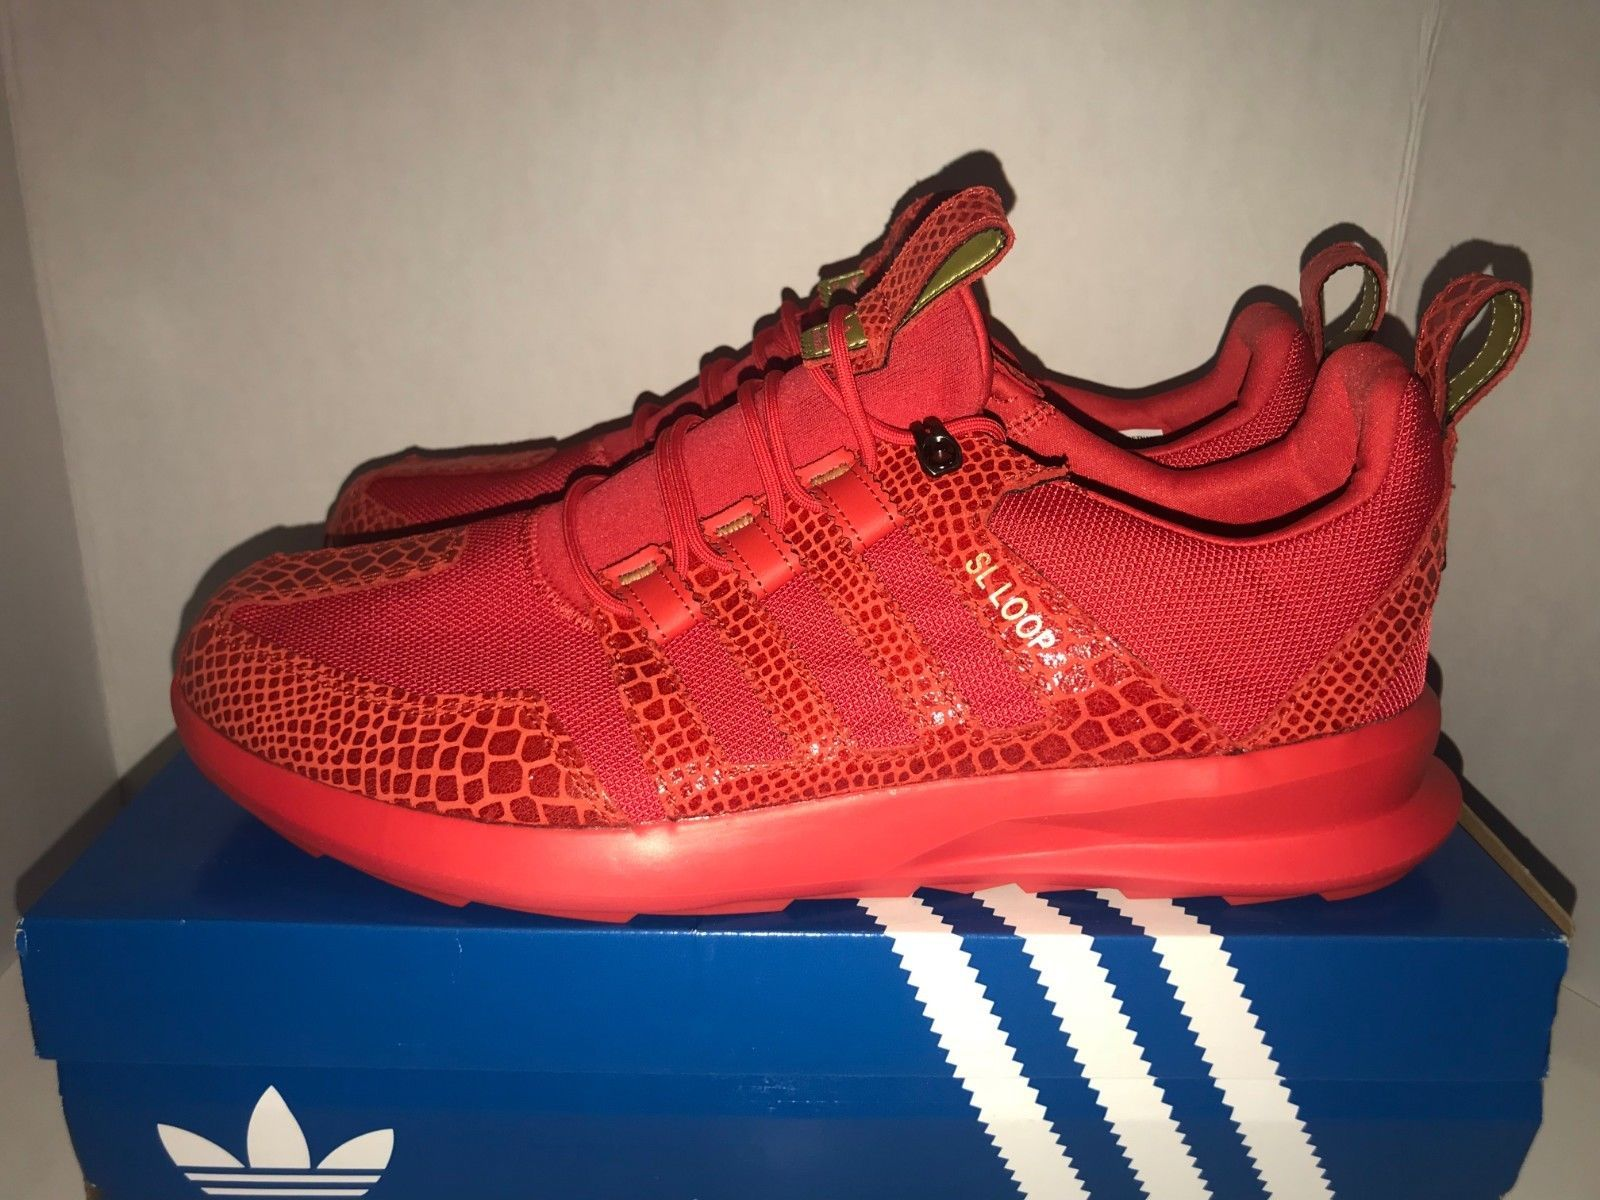 online store e78f4 83cfd Adidas SL Loop Runner TR Red Reptile October and similar items. 57